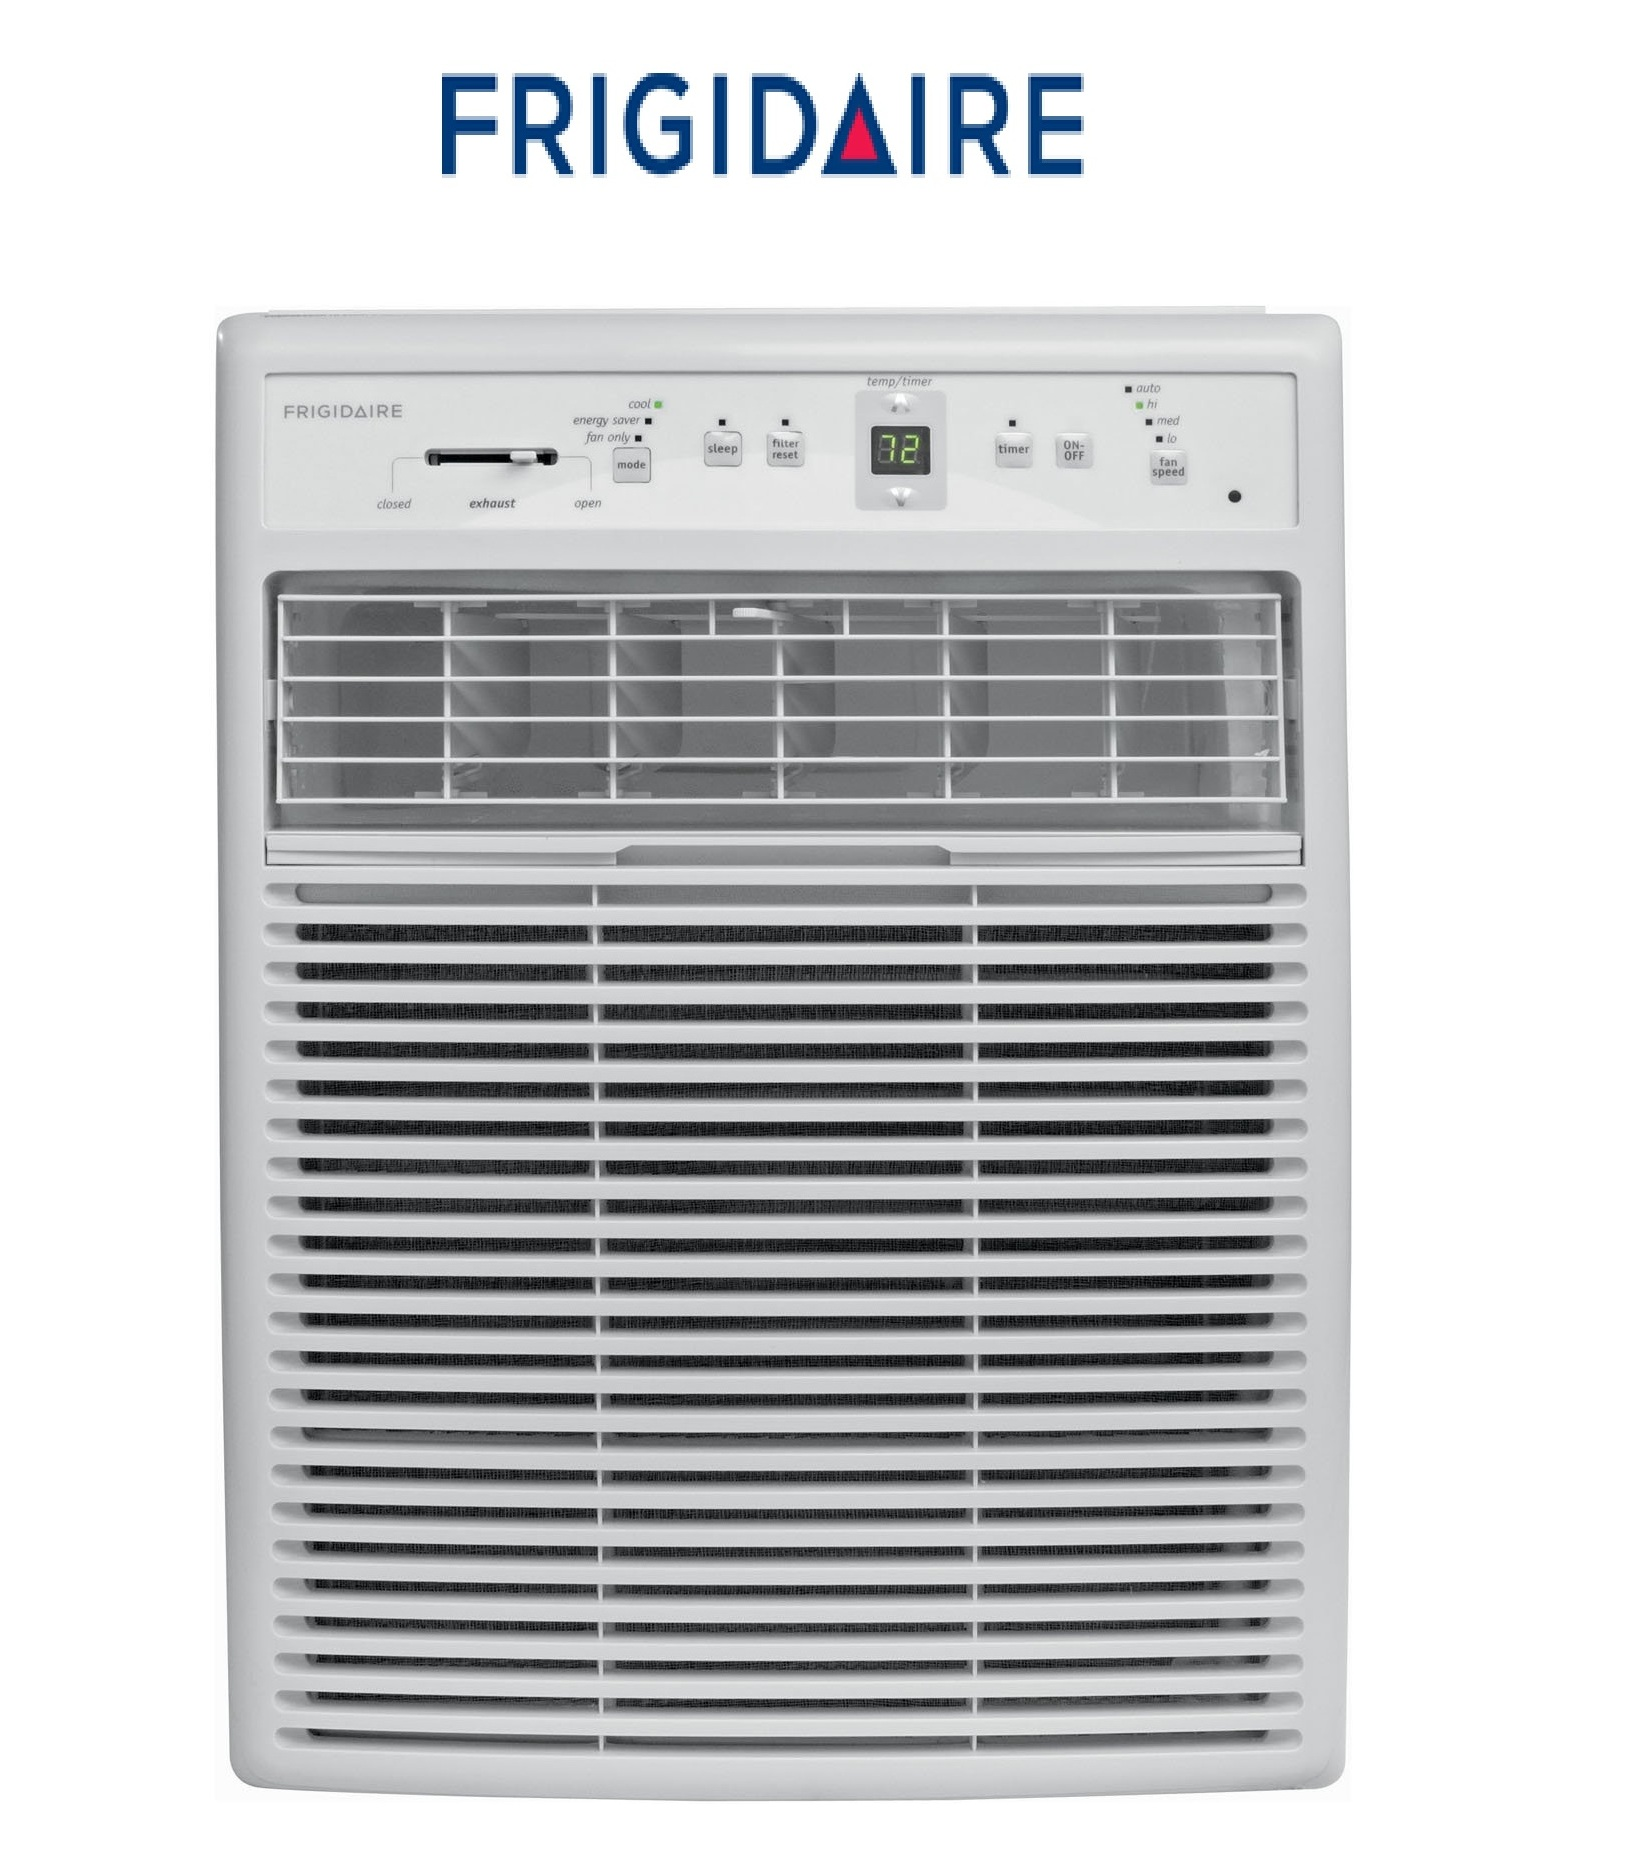 Frigidaire Fra123kt1 12 000btu Window Vertical Casement